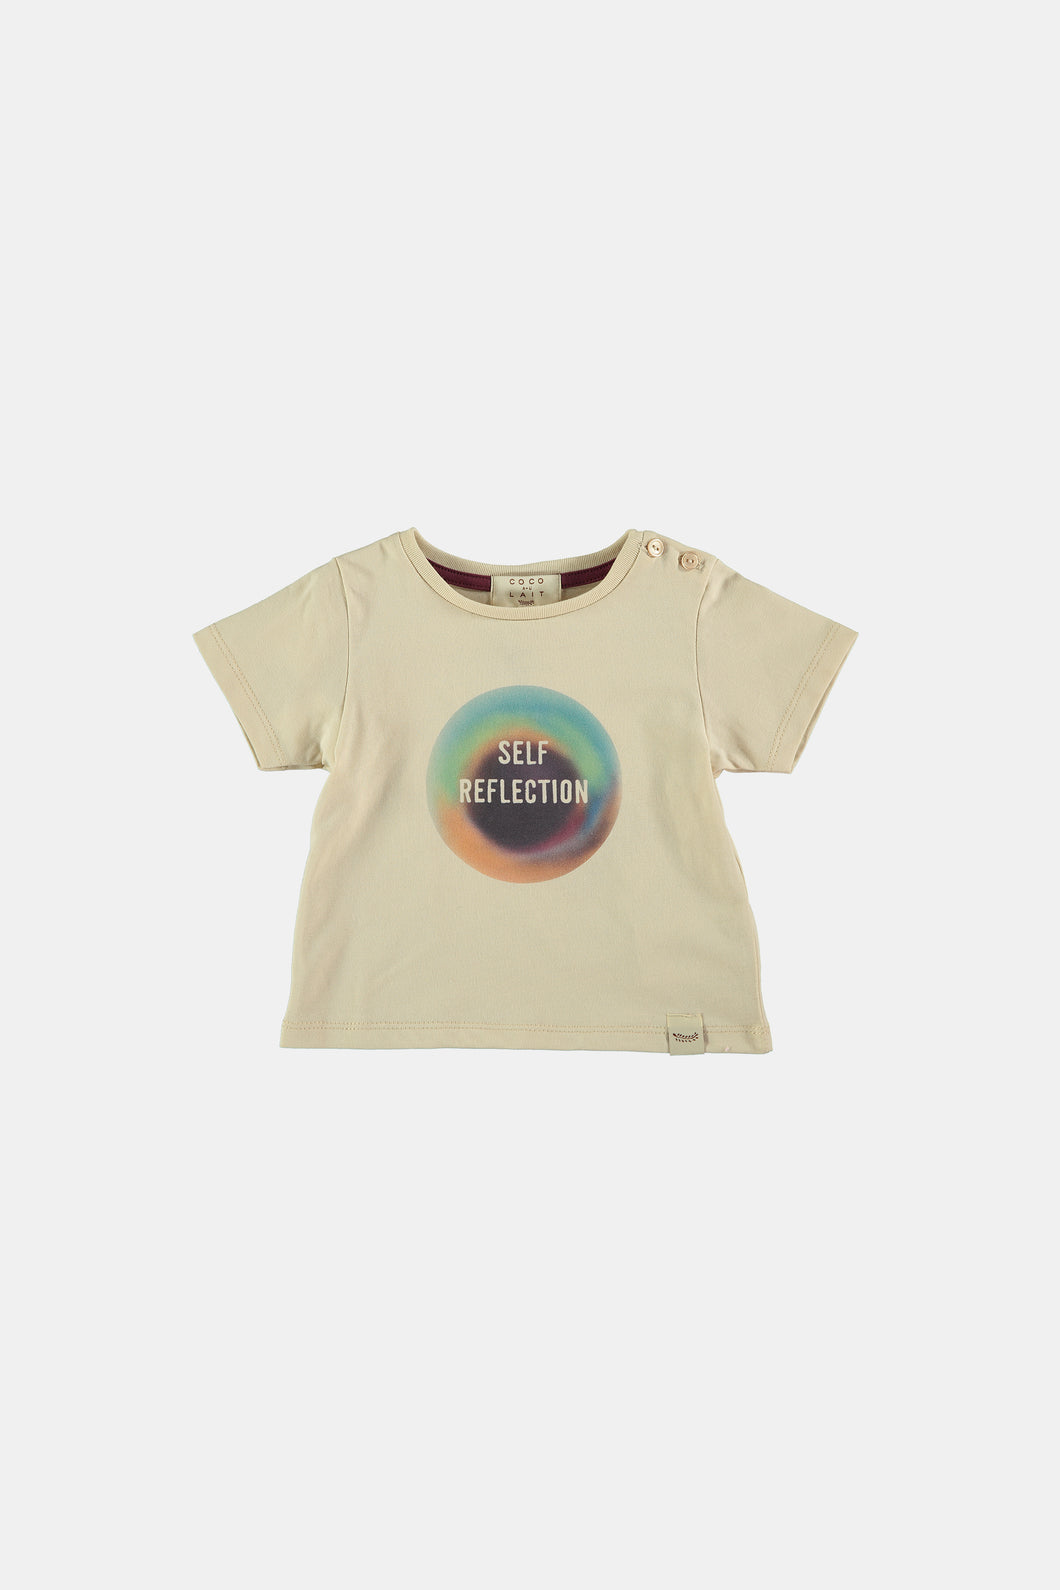 Coco Au Lait Self Reflection Baby Tee T-Shirt Bleached Sand